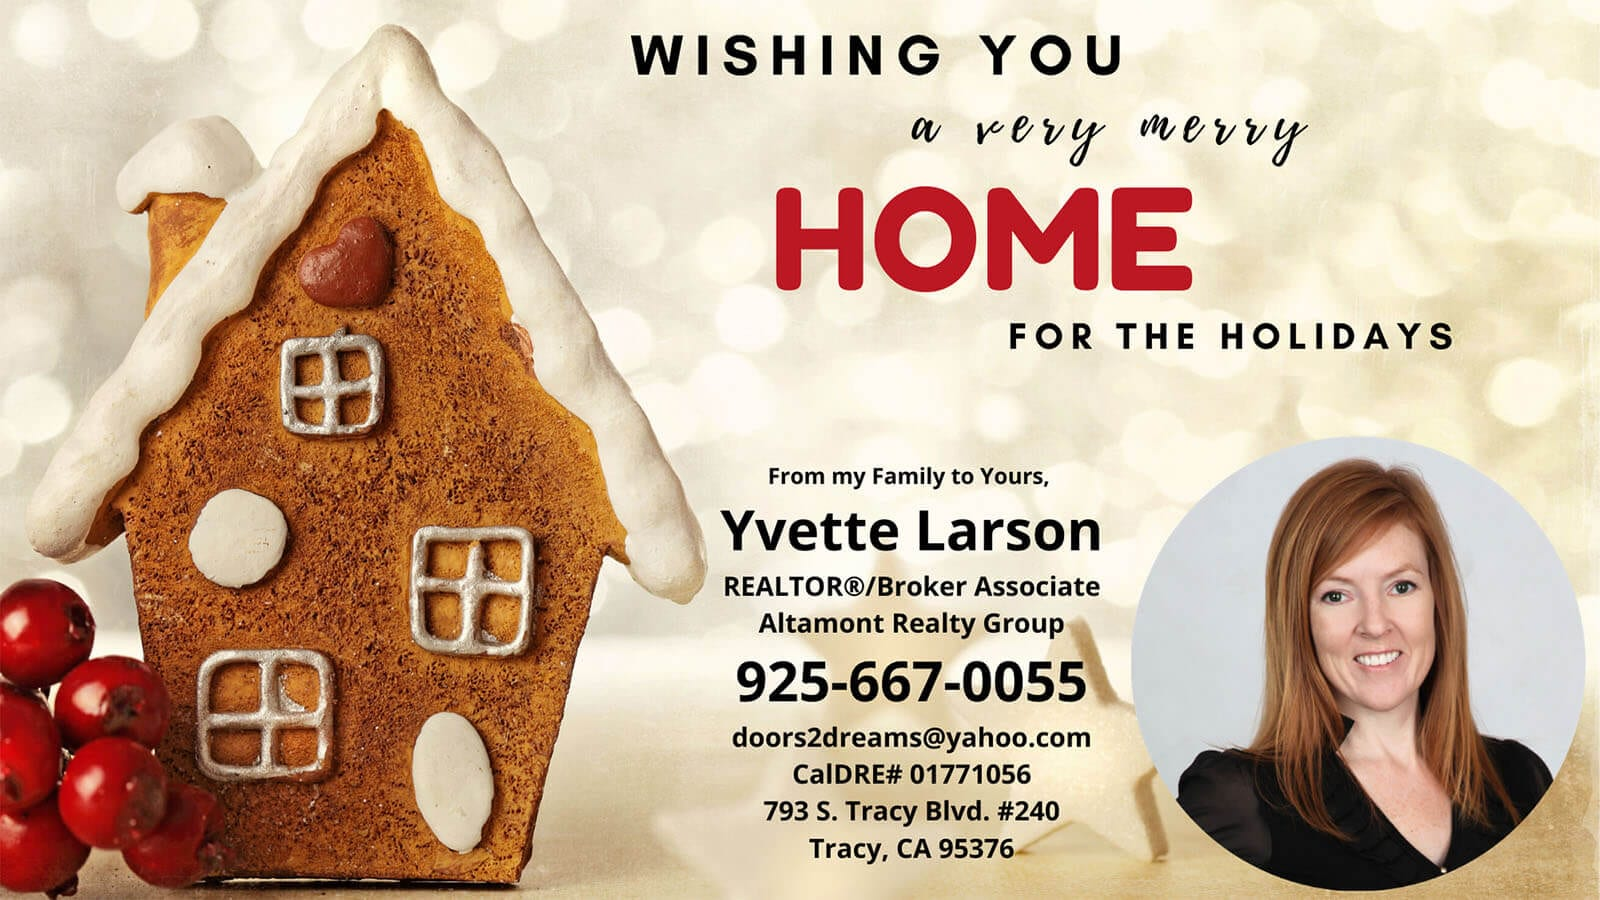 December ad for Yvette Larson, Realtor in Tracy